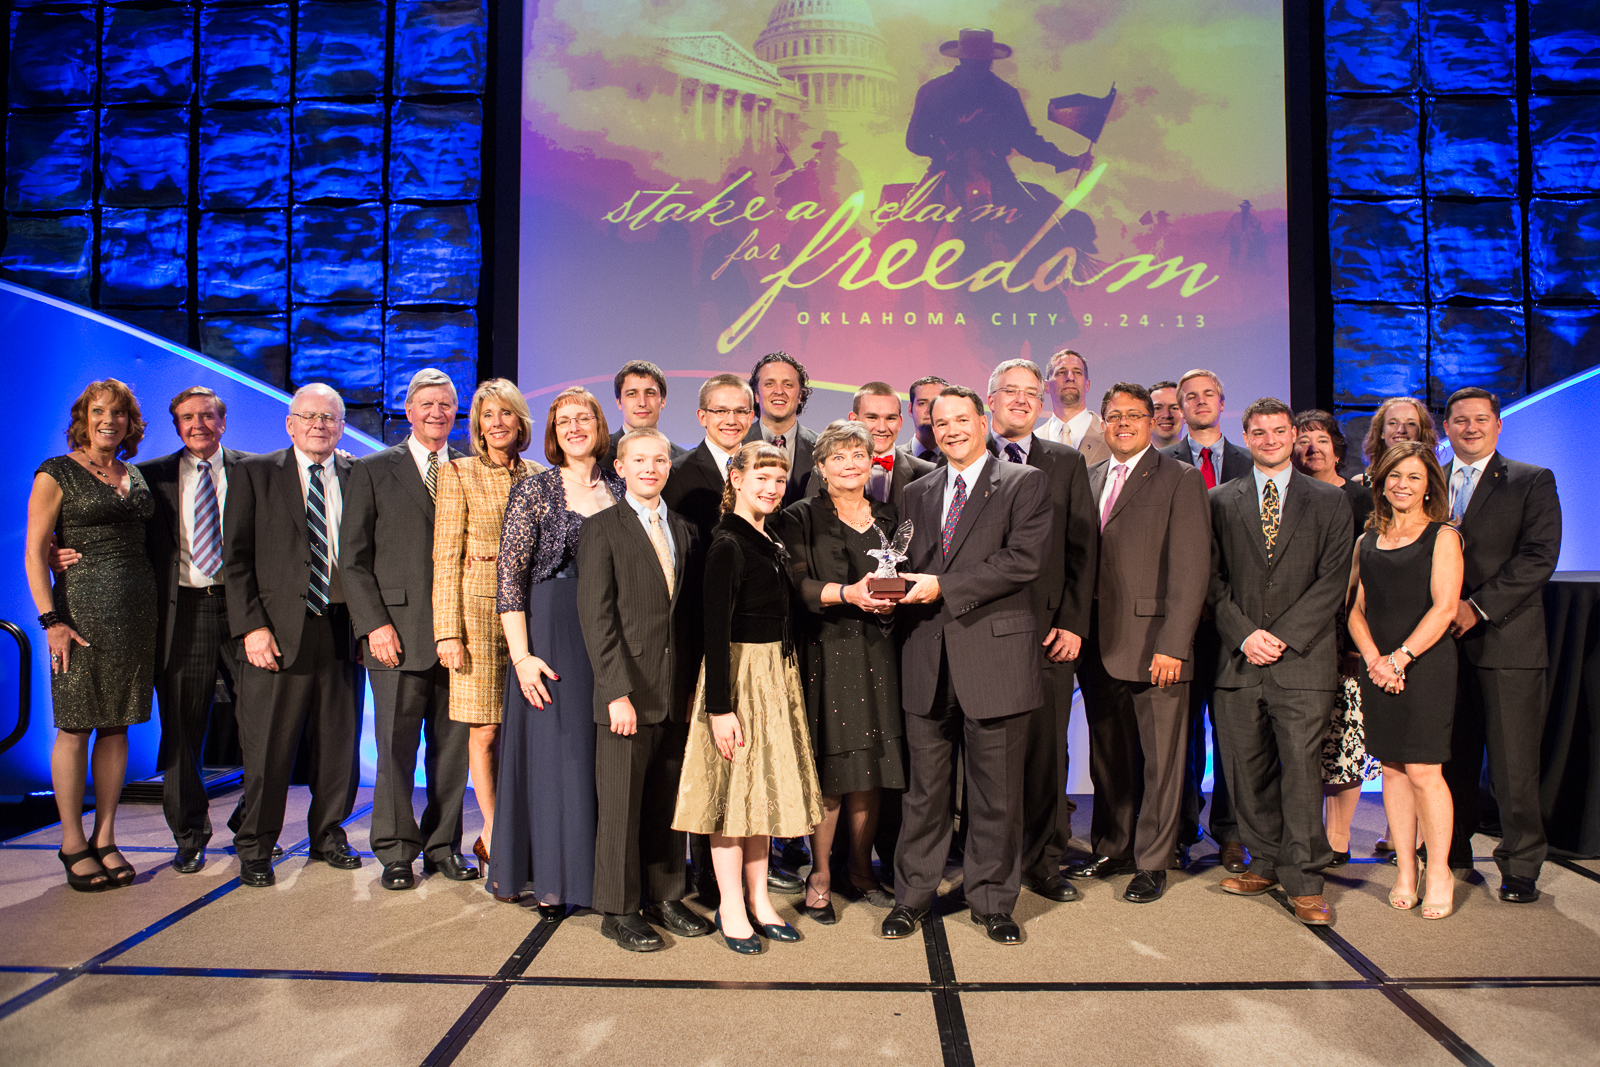 Roe Award photo